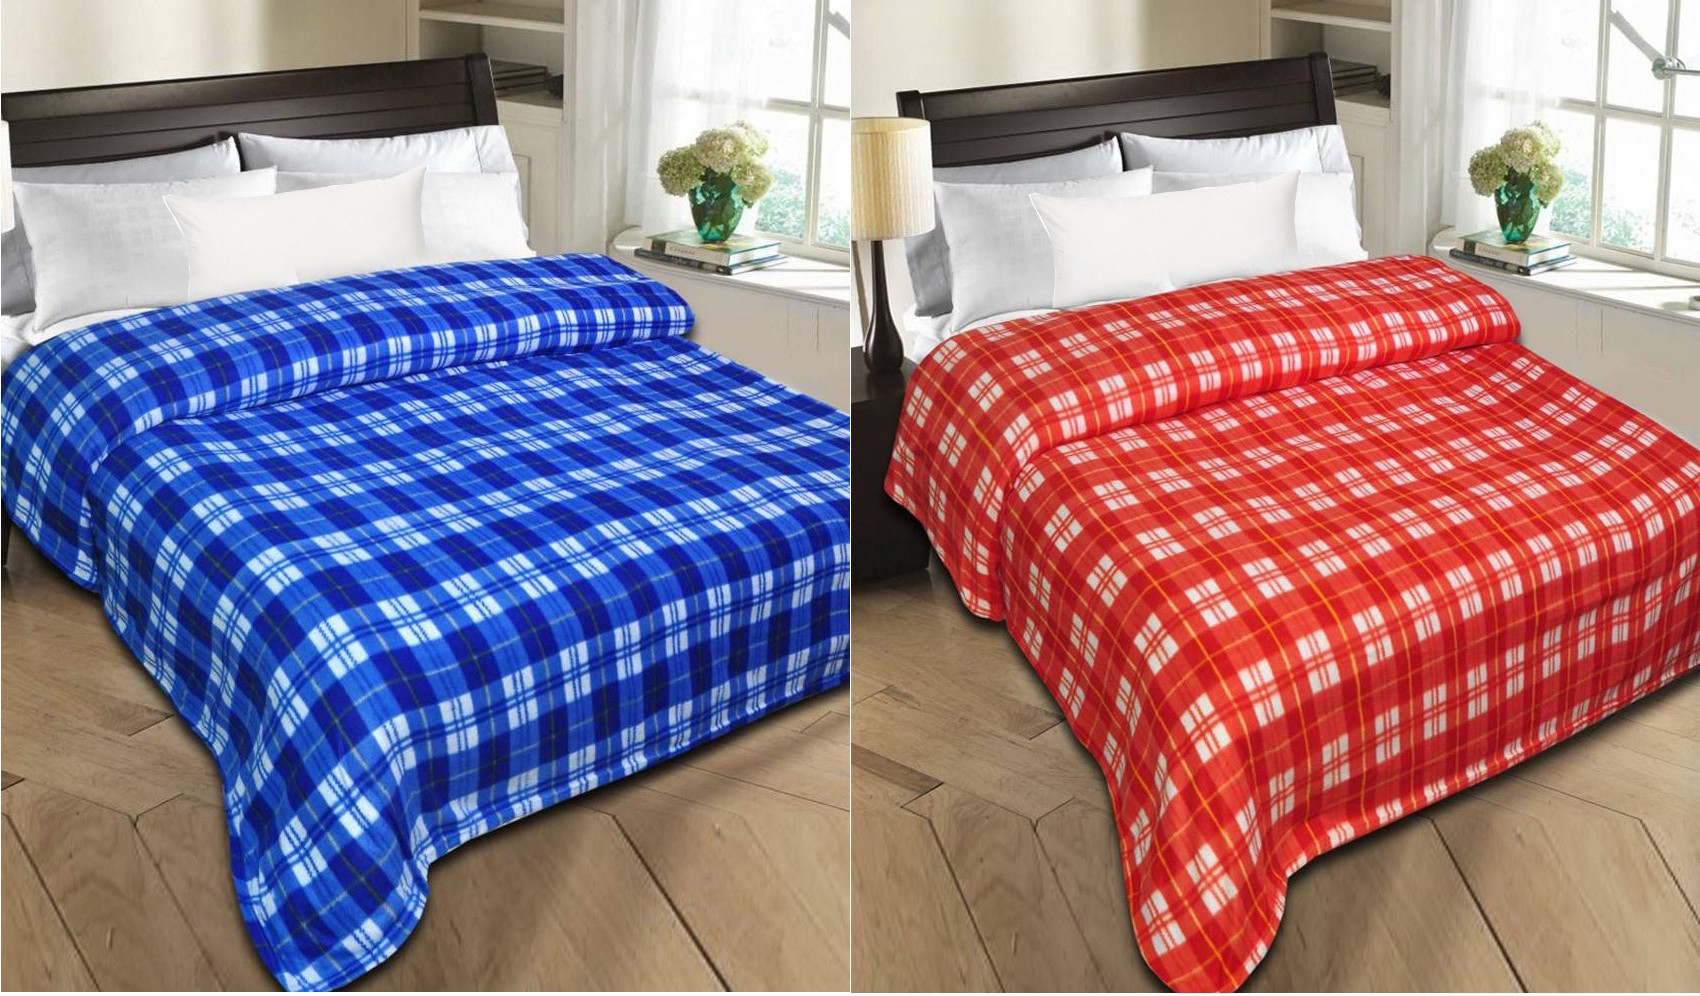 Styletex Checkered Single Blanket Blue, Red(Fleece Blanket, 1 Blue Blanket 1 Red Blanket)